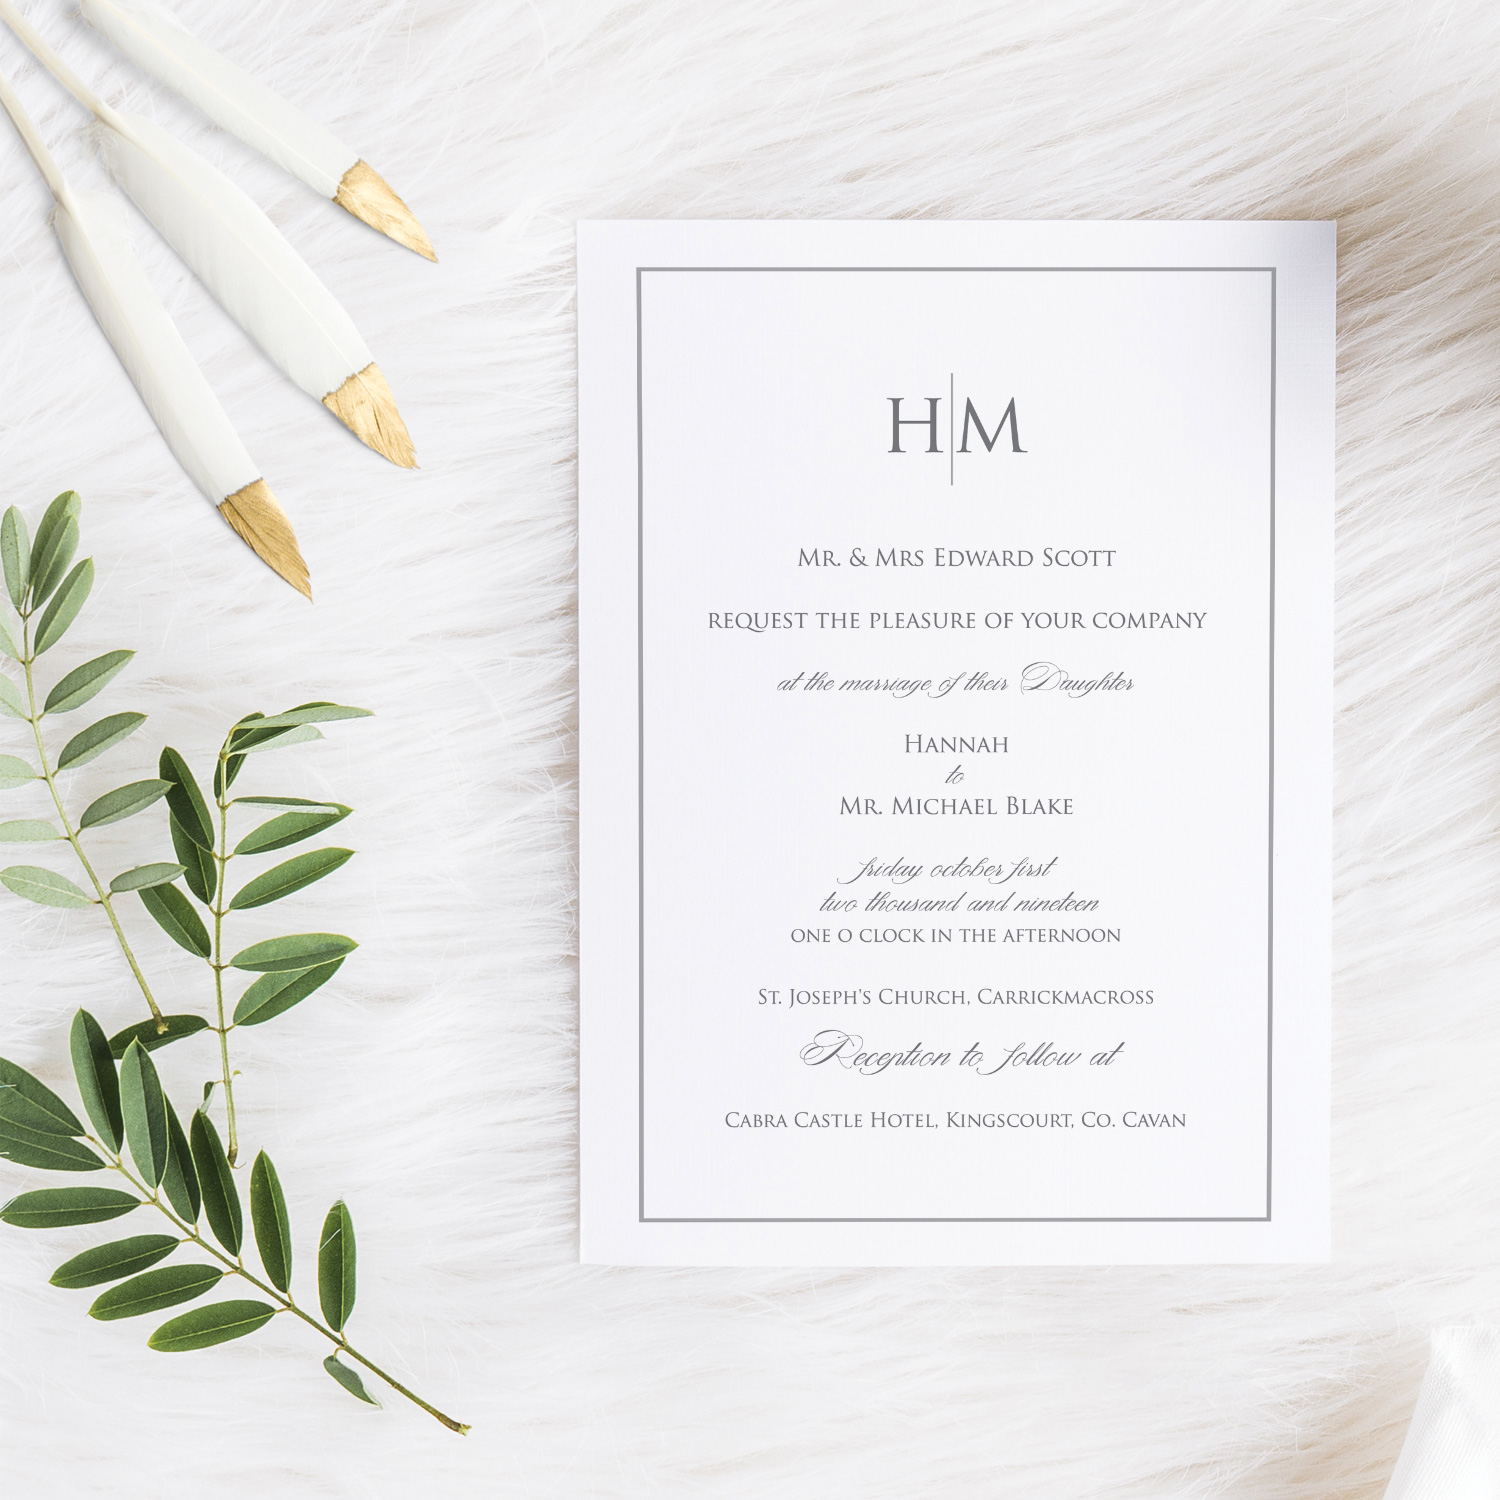 simple classy elegant white invite invitations stationery